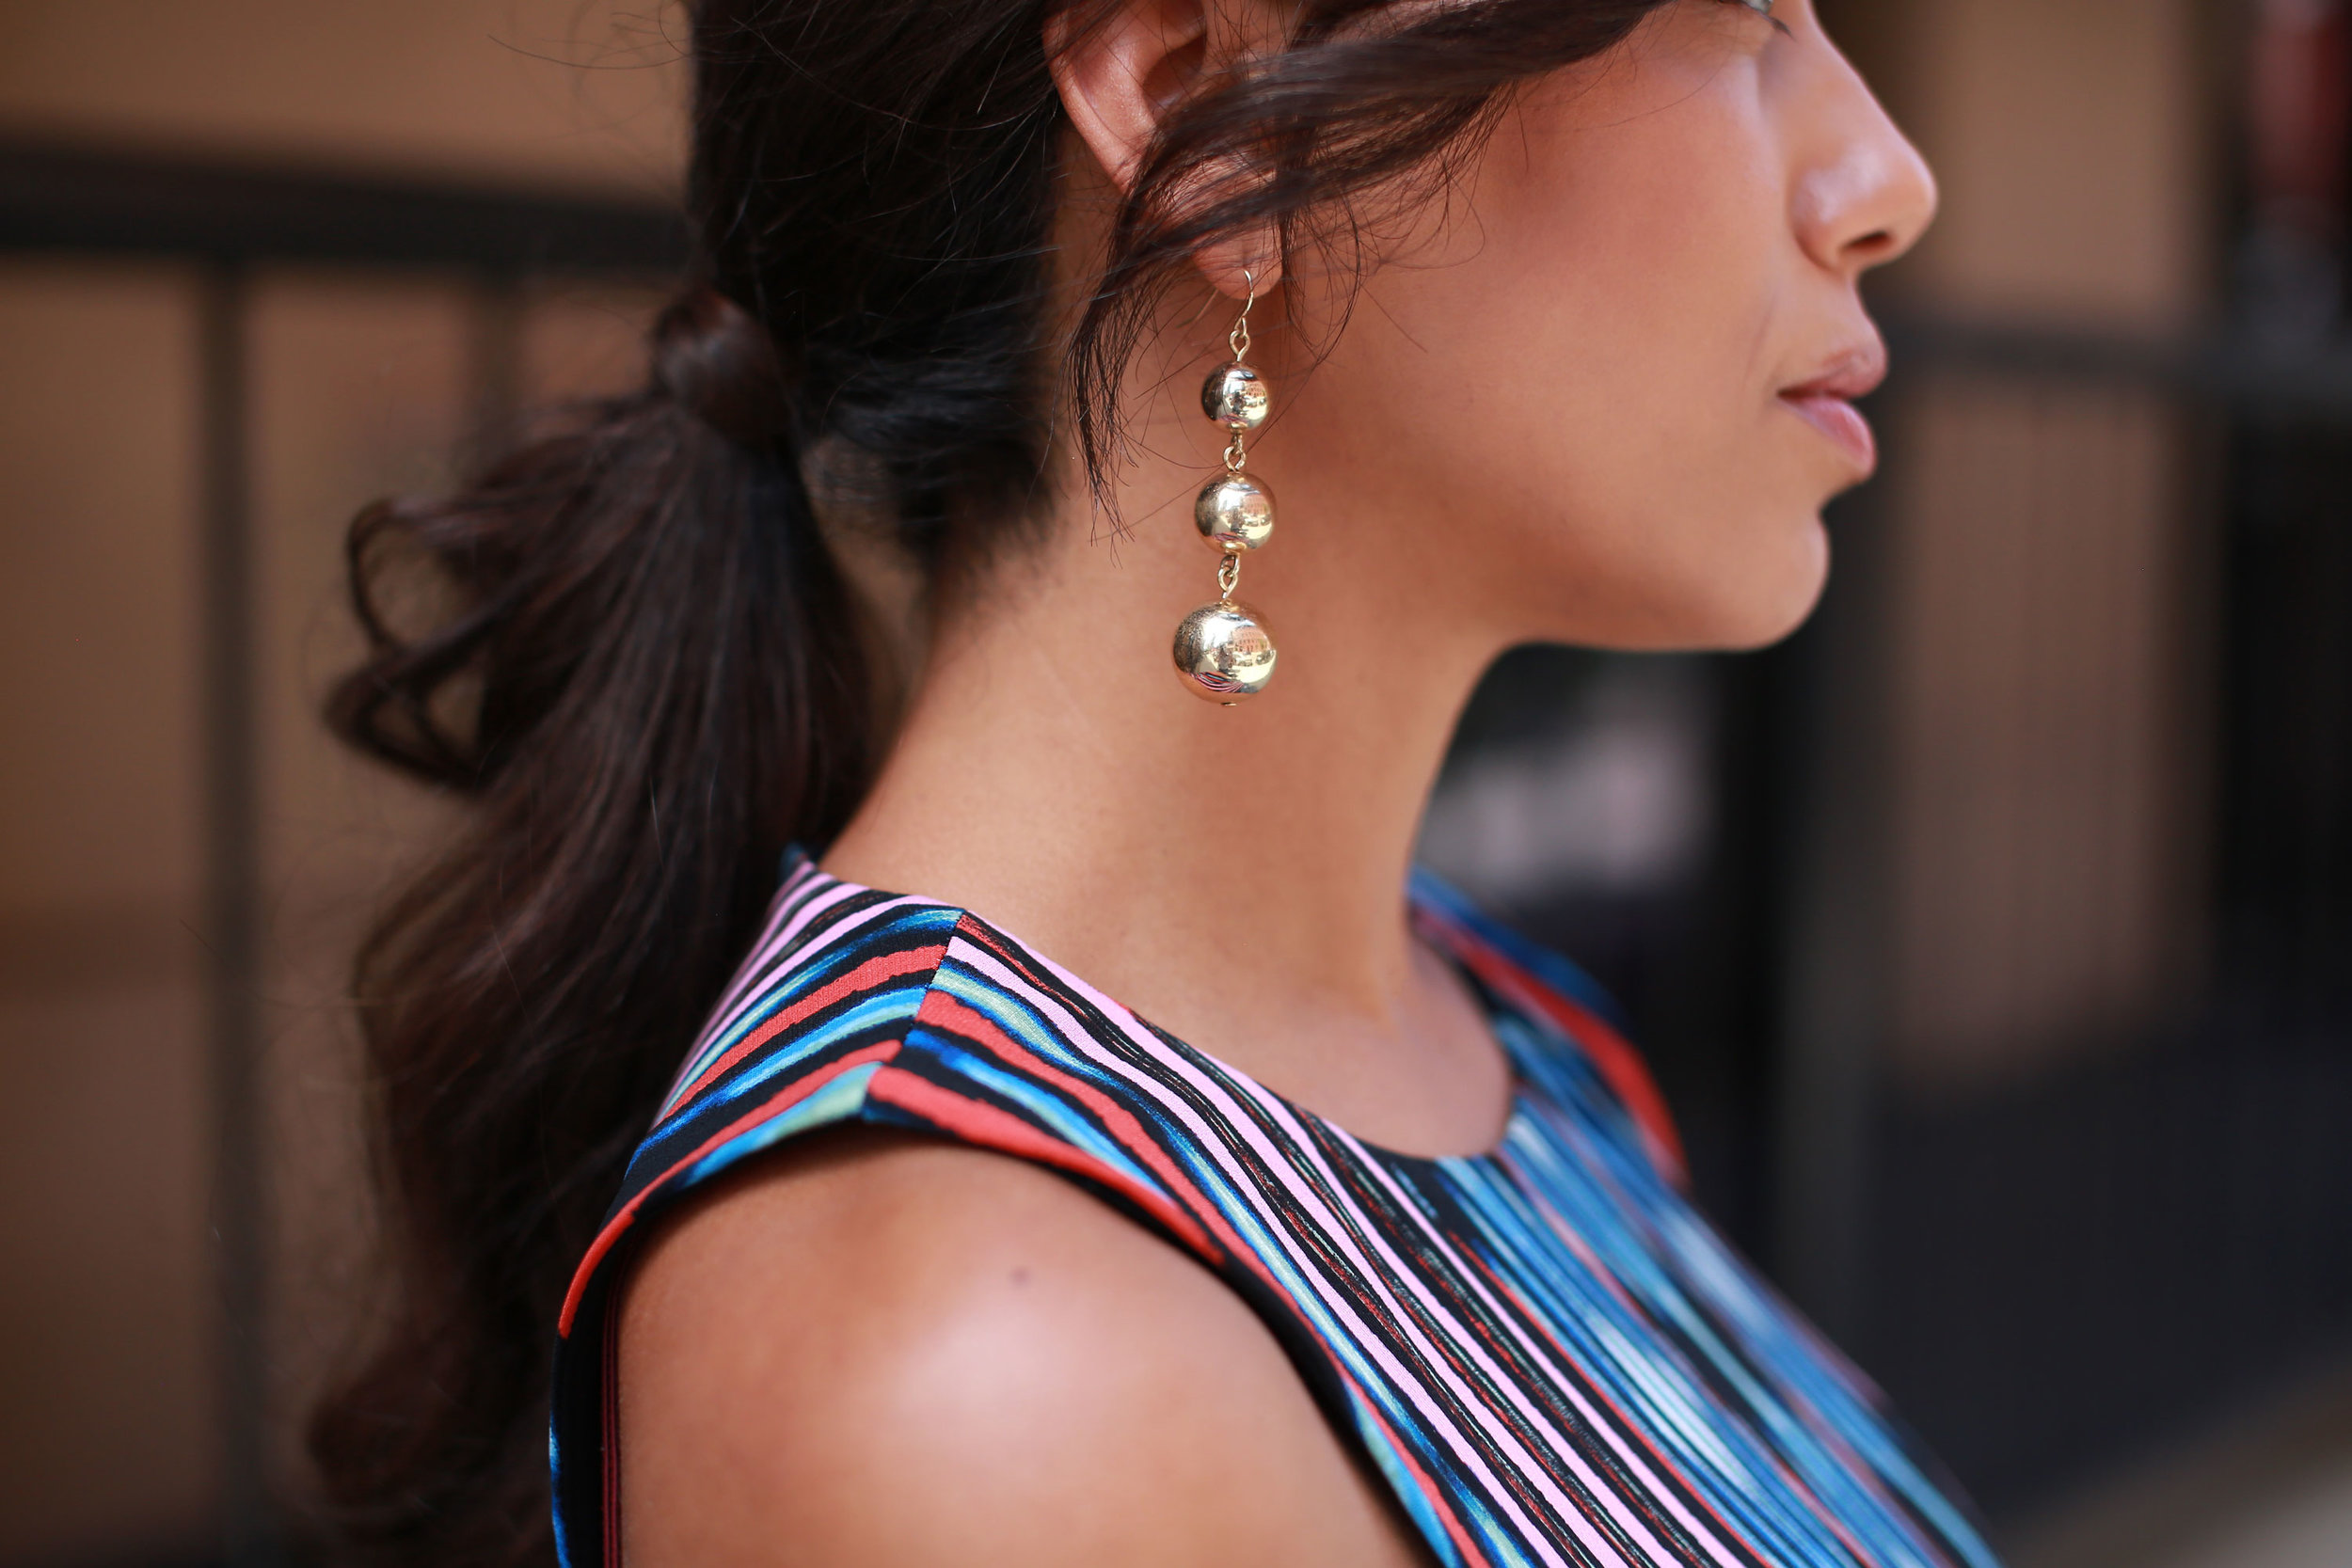 THE EARRINGS - Time to have some fun! Bring some attention to your stunning smile with a pair of fun statement earrings, like these layered gold baubles!